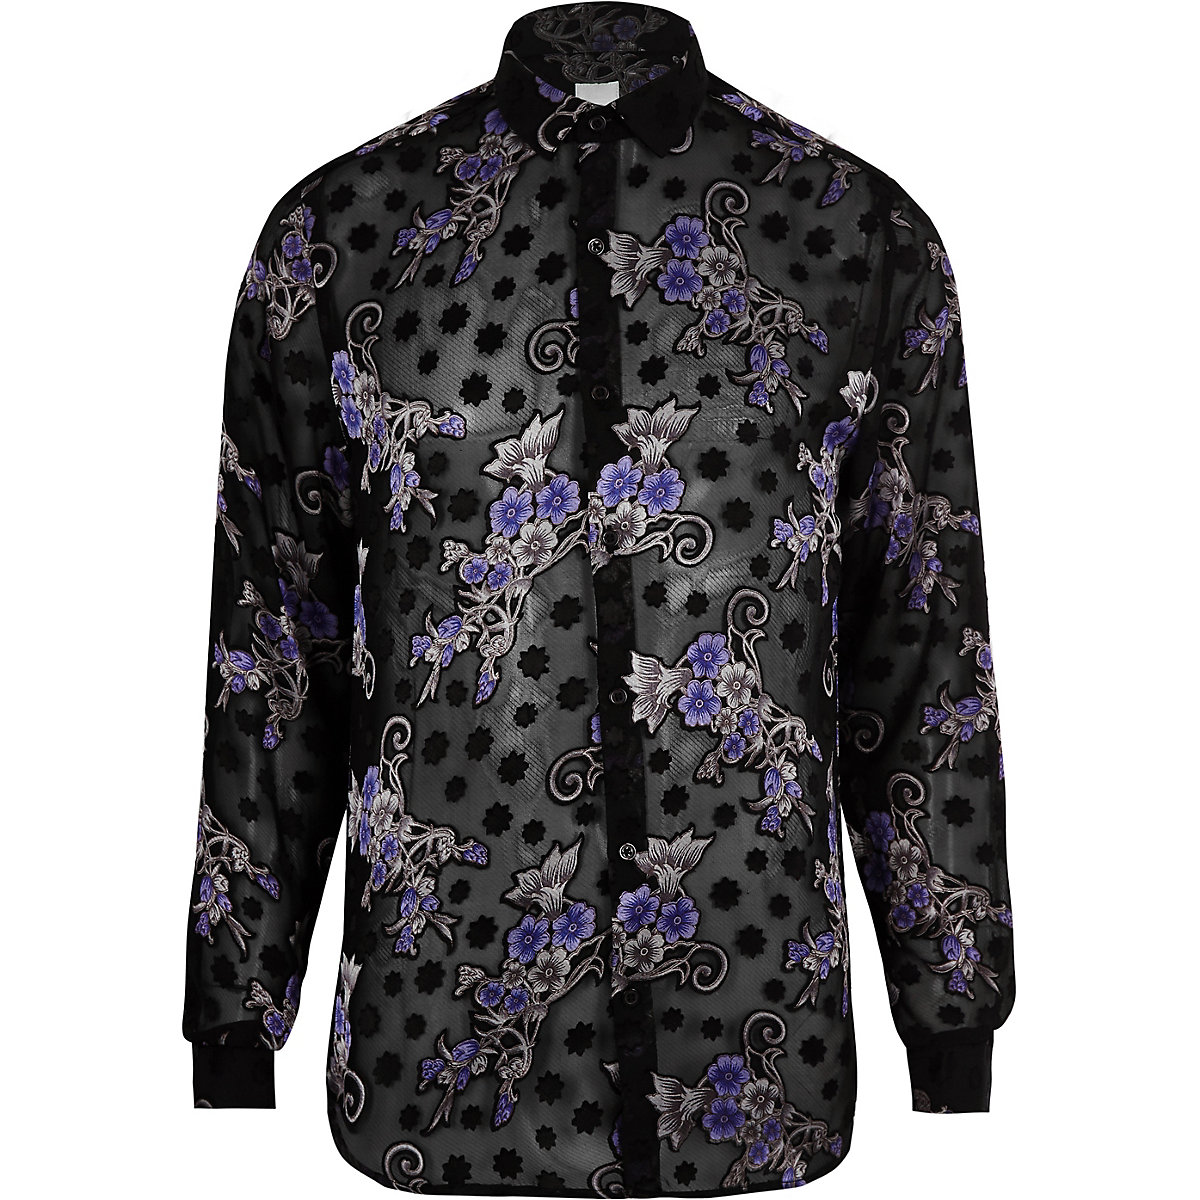 Black floral print long sleeve shirt